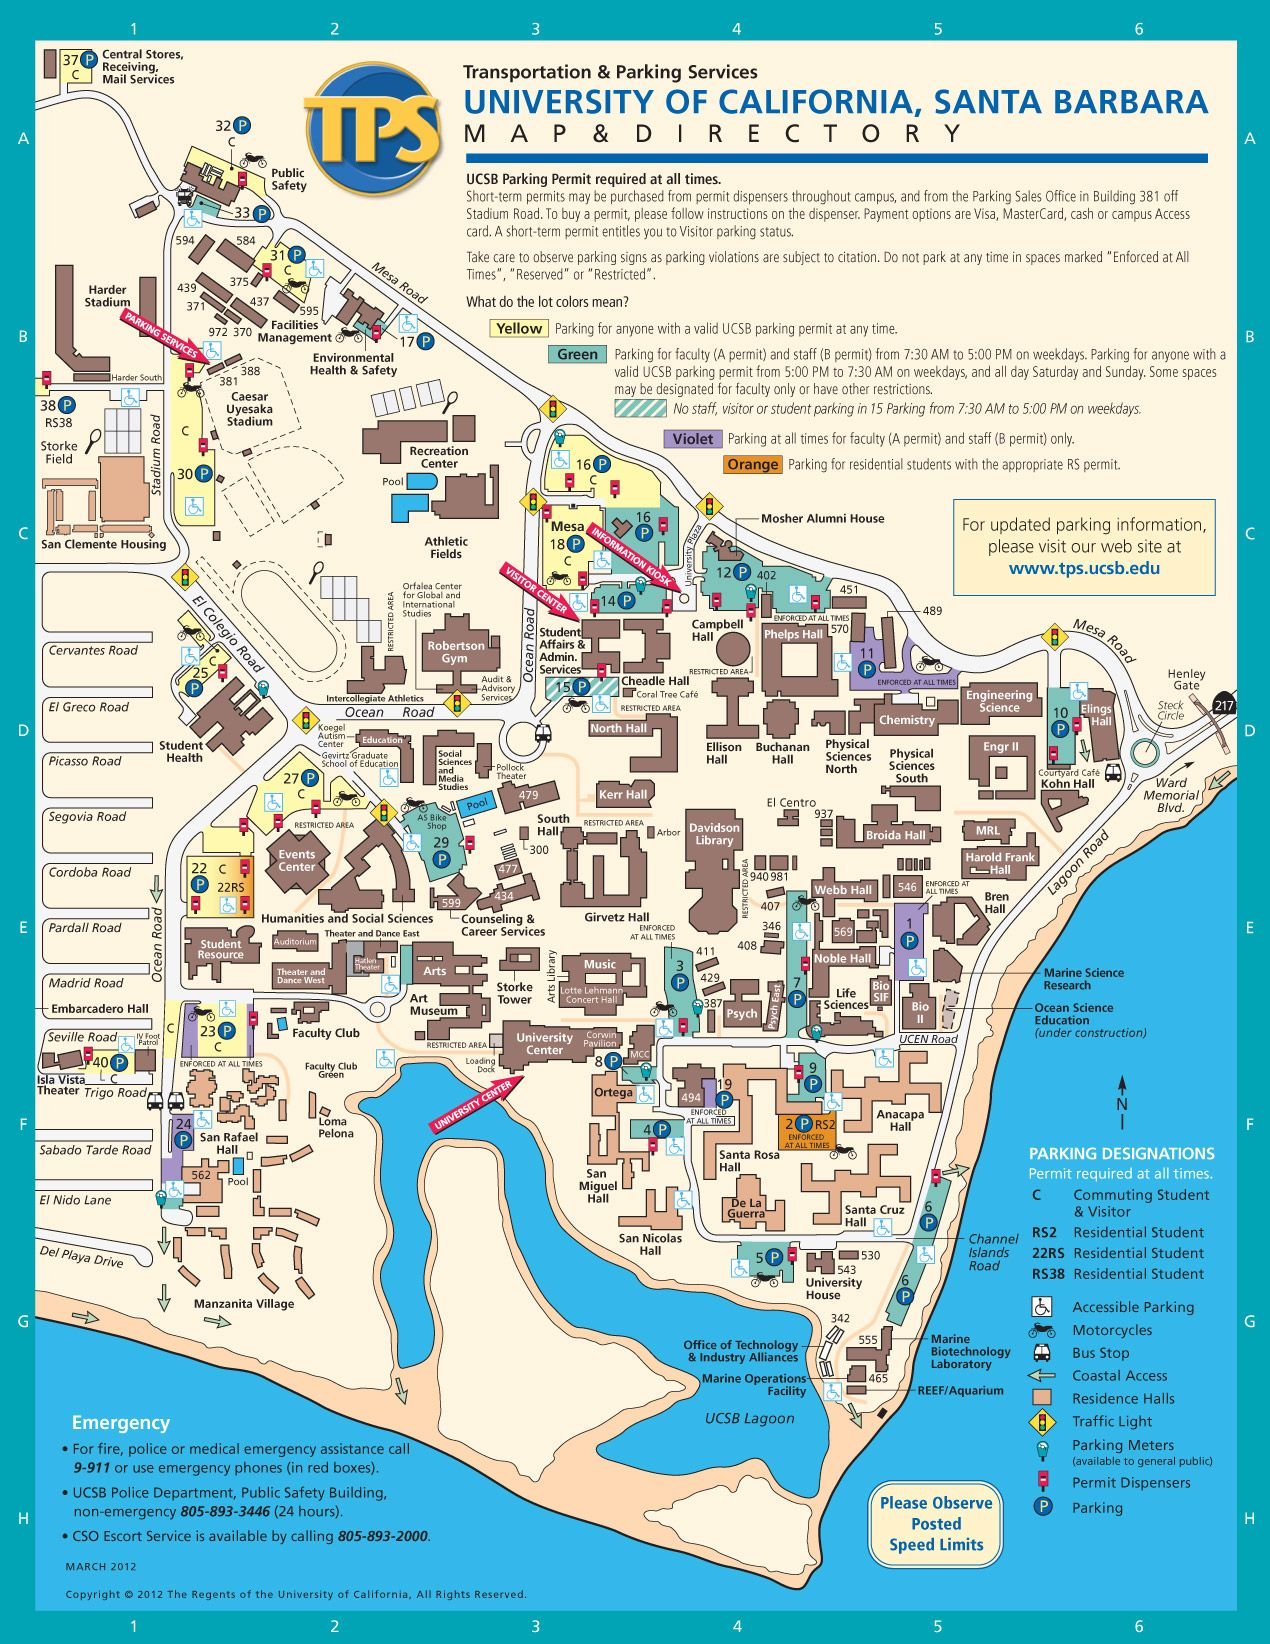 UCSB Campus Map, Santa Barbara, California {Bio image internship